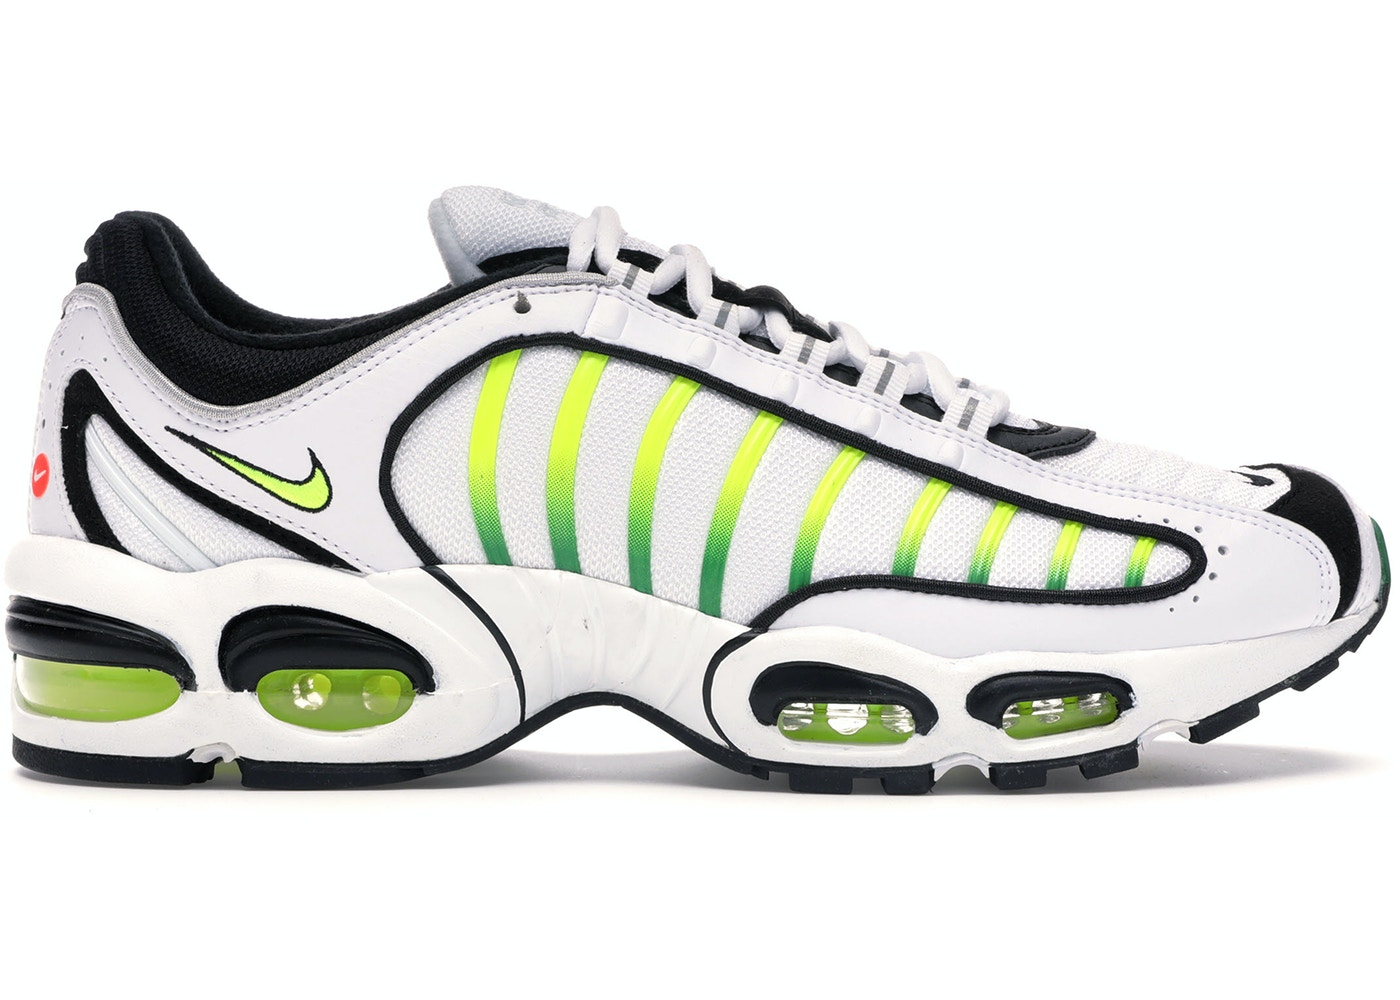 d301000b Air Max Tailwind 4 White Volt Black - AQ2567-100